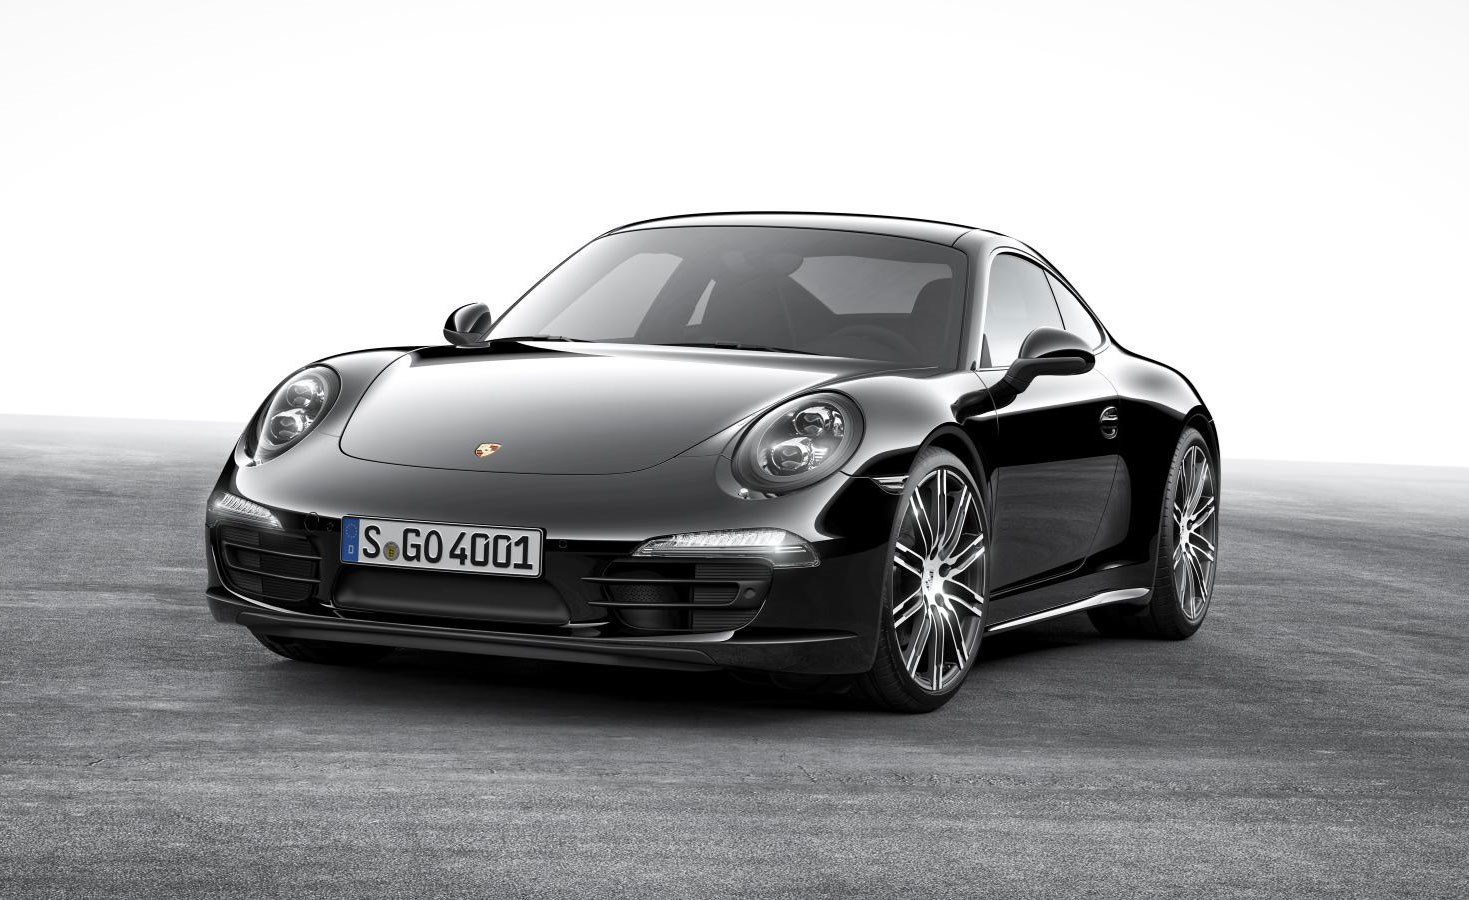 porsche 911 black edition is here all black extra equipment galore on sale now priced from 75074 - Porsche 911 2015 Black